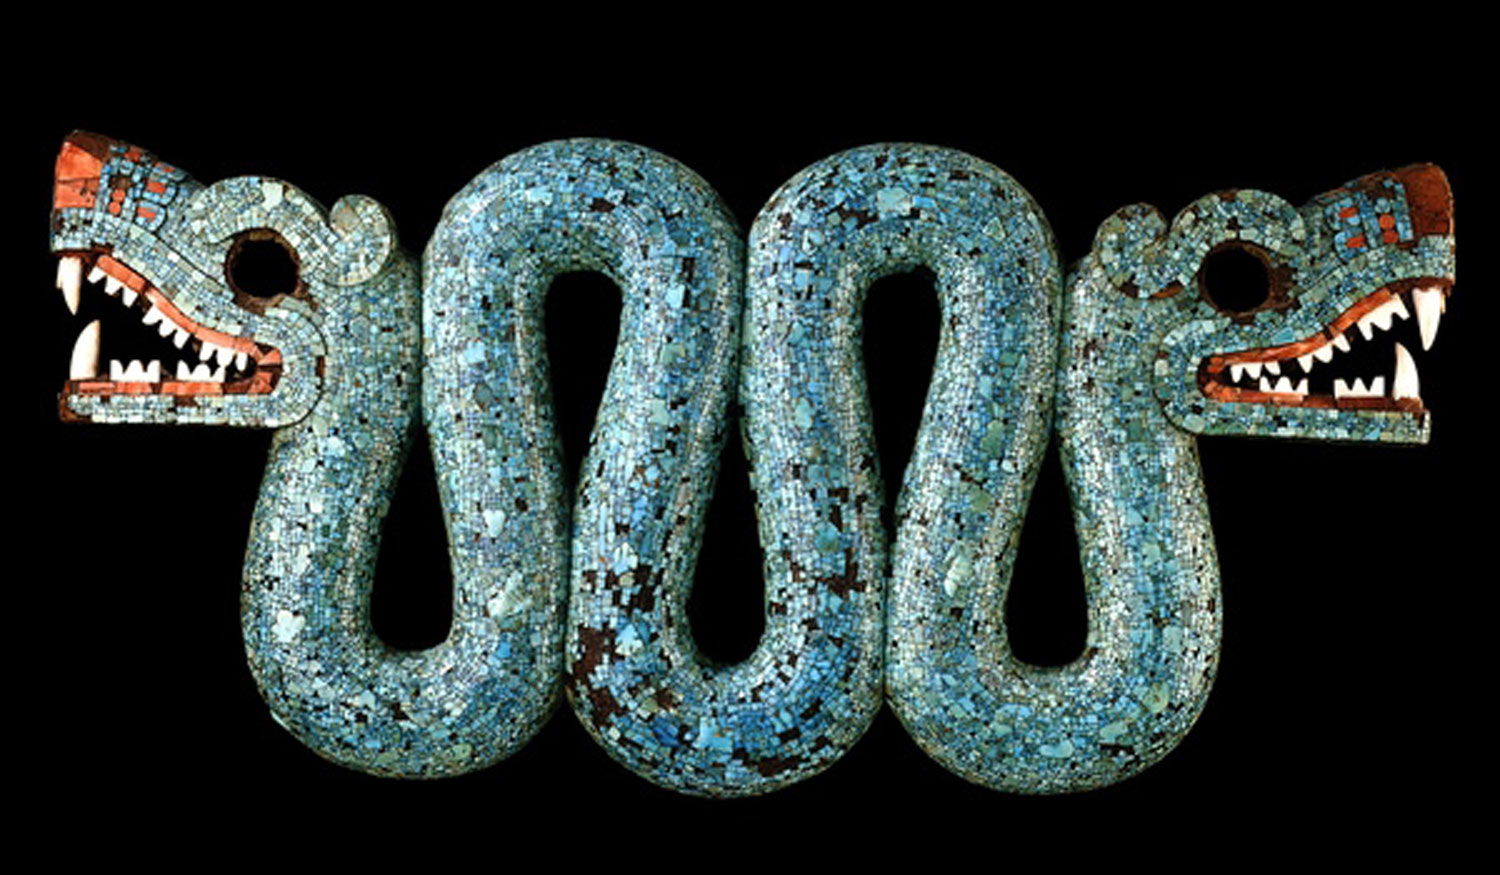 Aztec double-headed serpent: wood, turquoise, pine resin, shell, and others.  The British Museum . Possibly part of a ceremonial costume, worn as a pectoral. It may have been a representation of the earth and underworld with each head representing one.